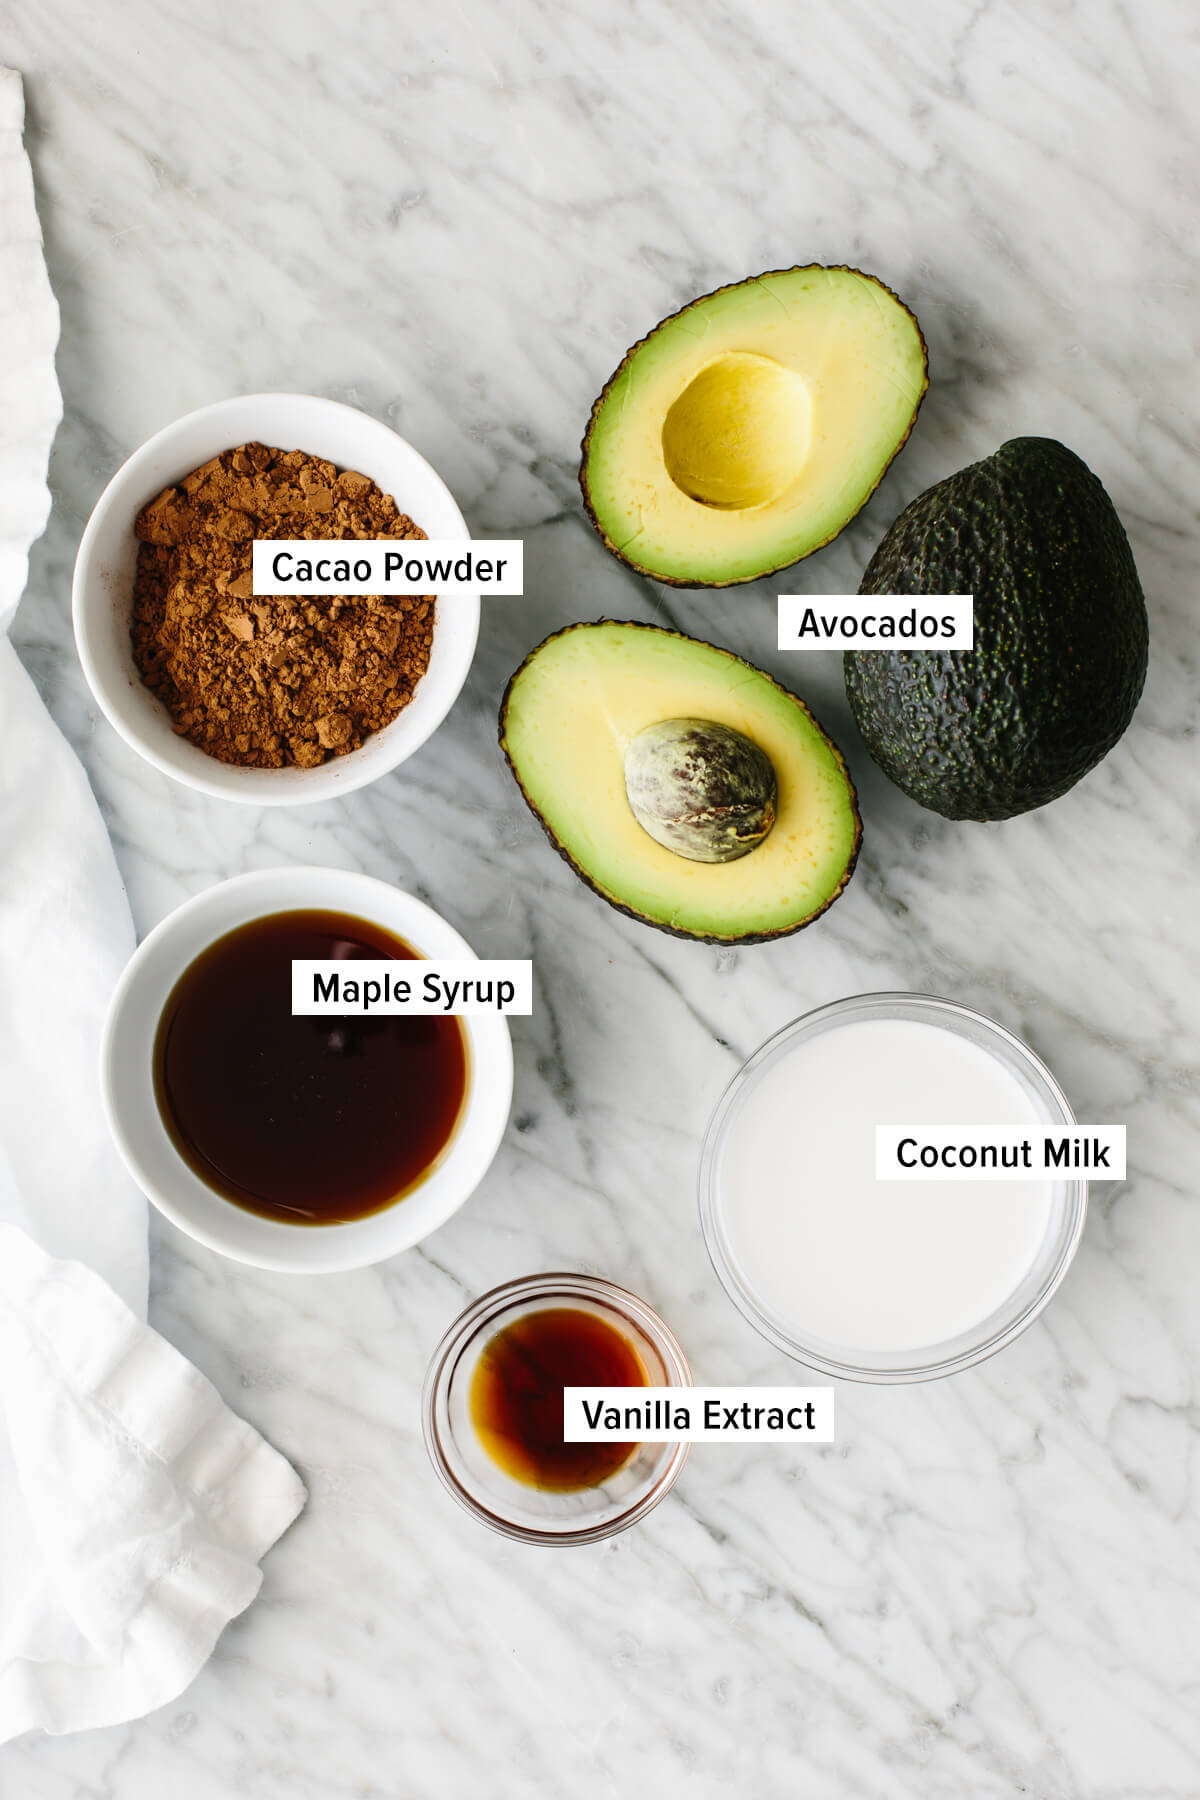 Chocolate avocado pudding ingredients on a countertop.